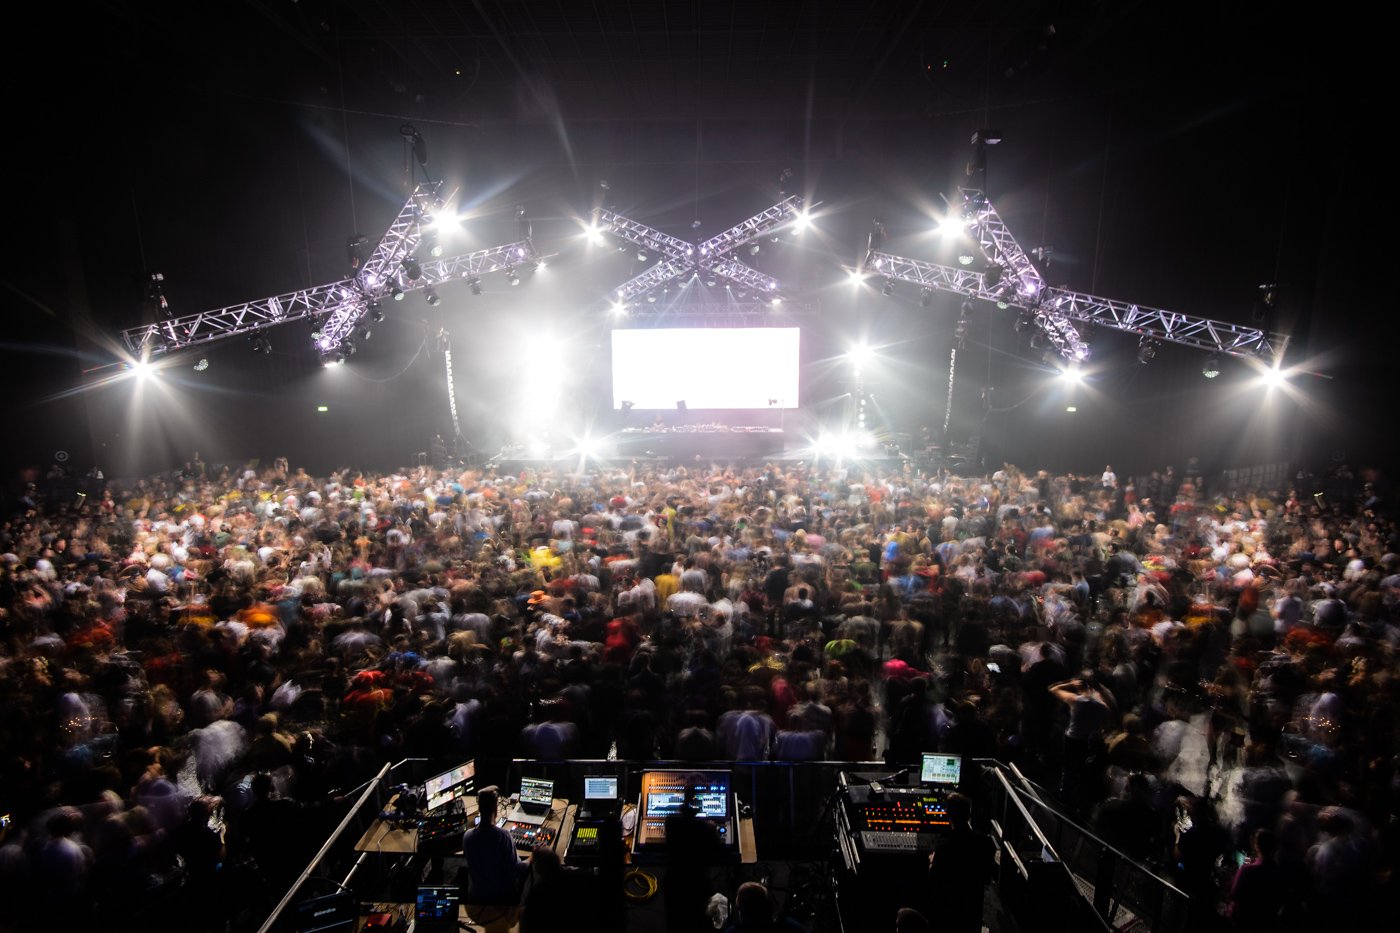 winterparty-at-3arena-dublin-30-10-2016-by-sean-smyth-47-of-53